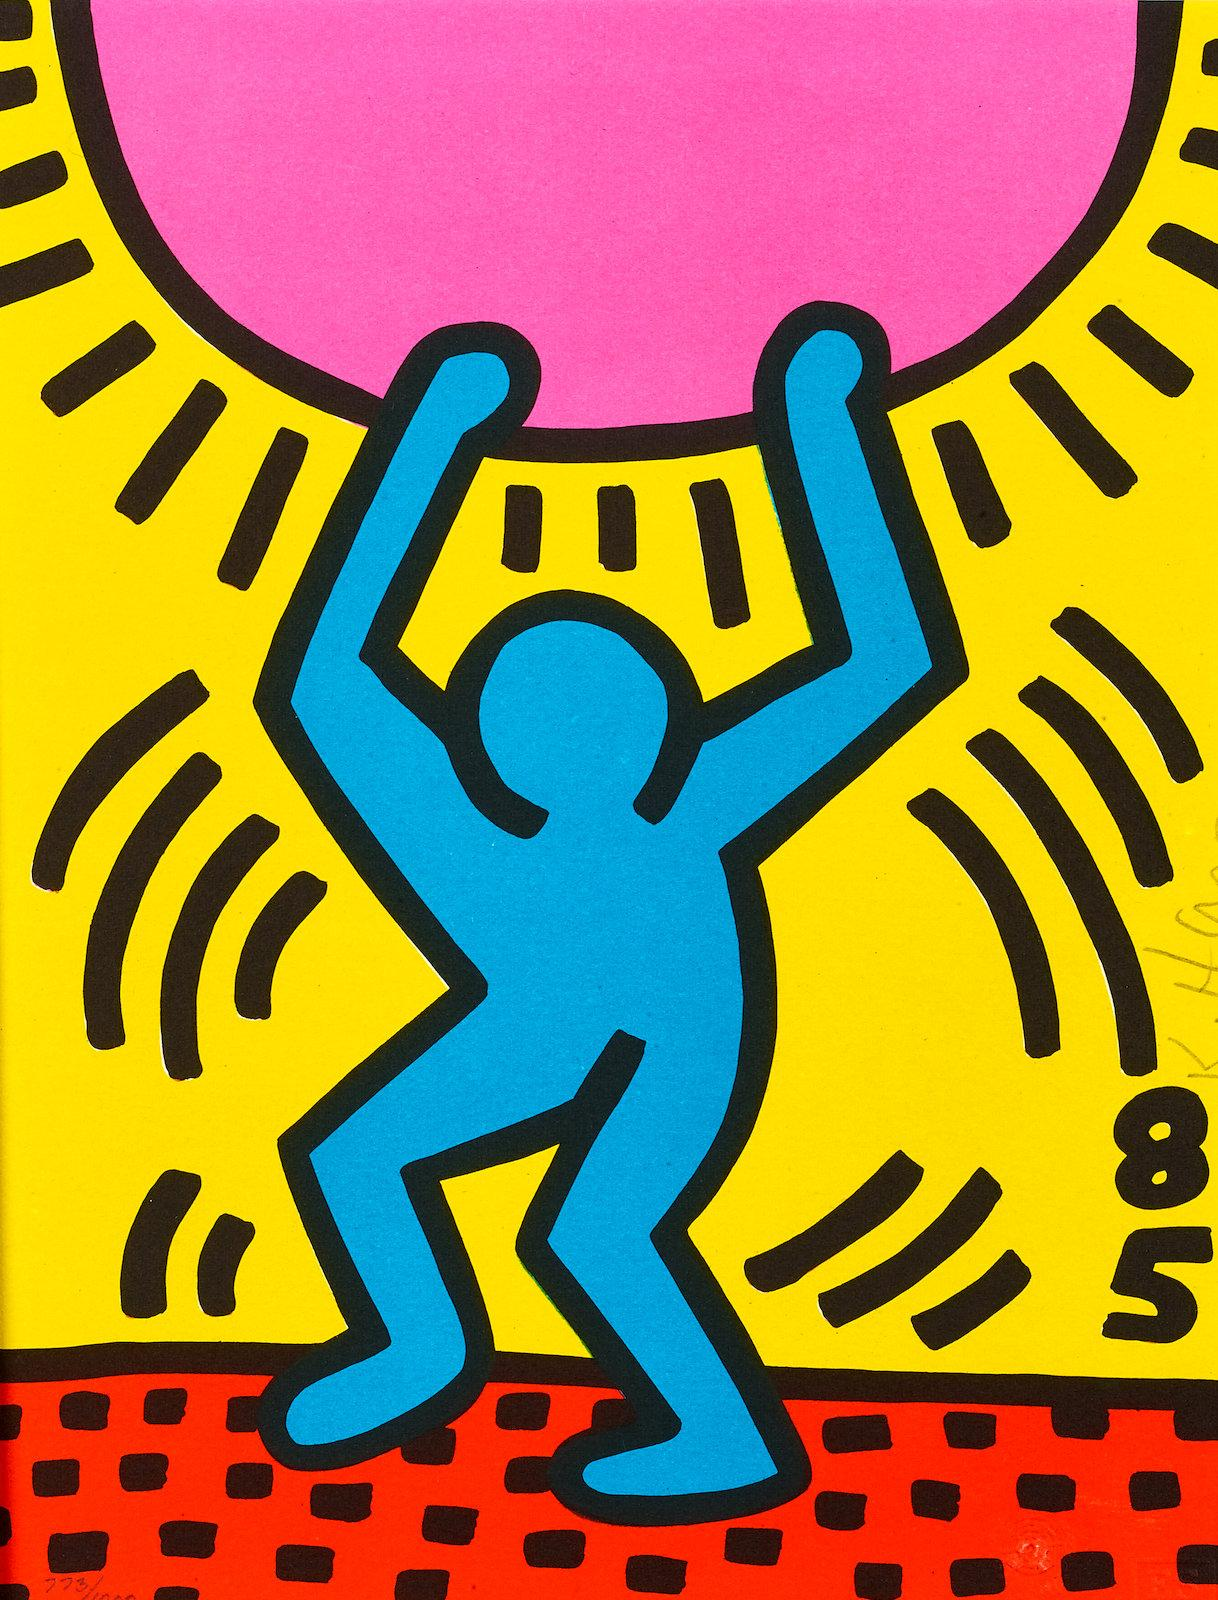 Keith Haring International Youth Year